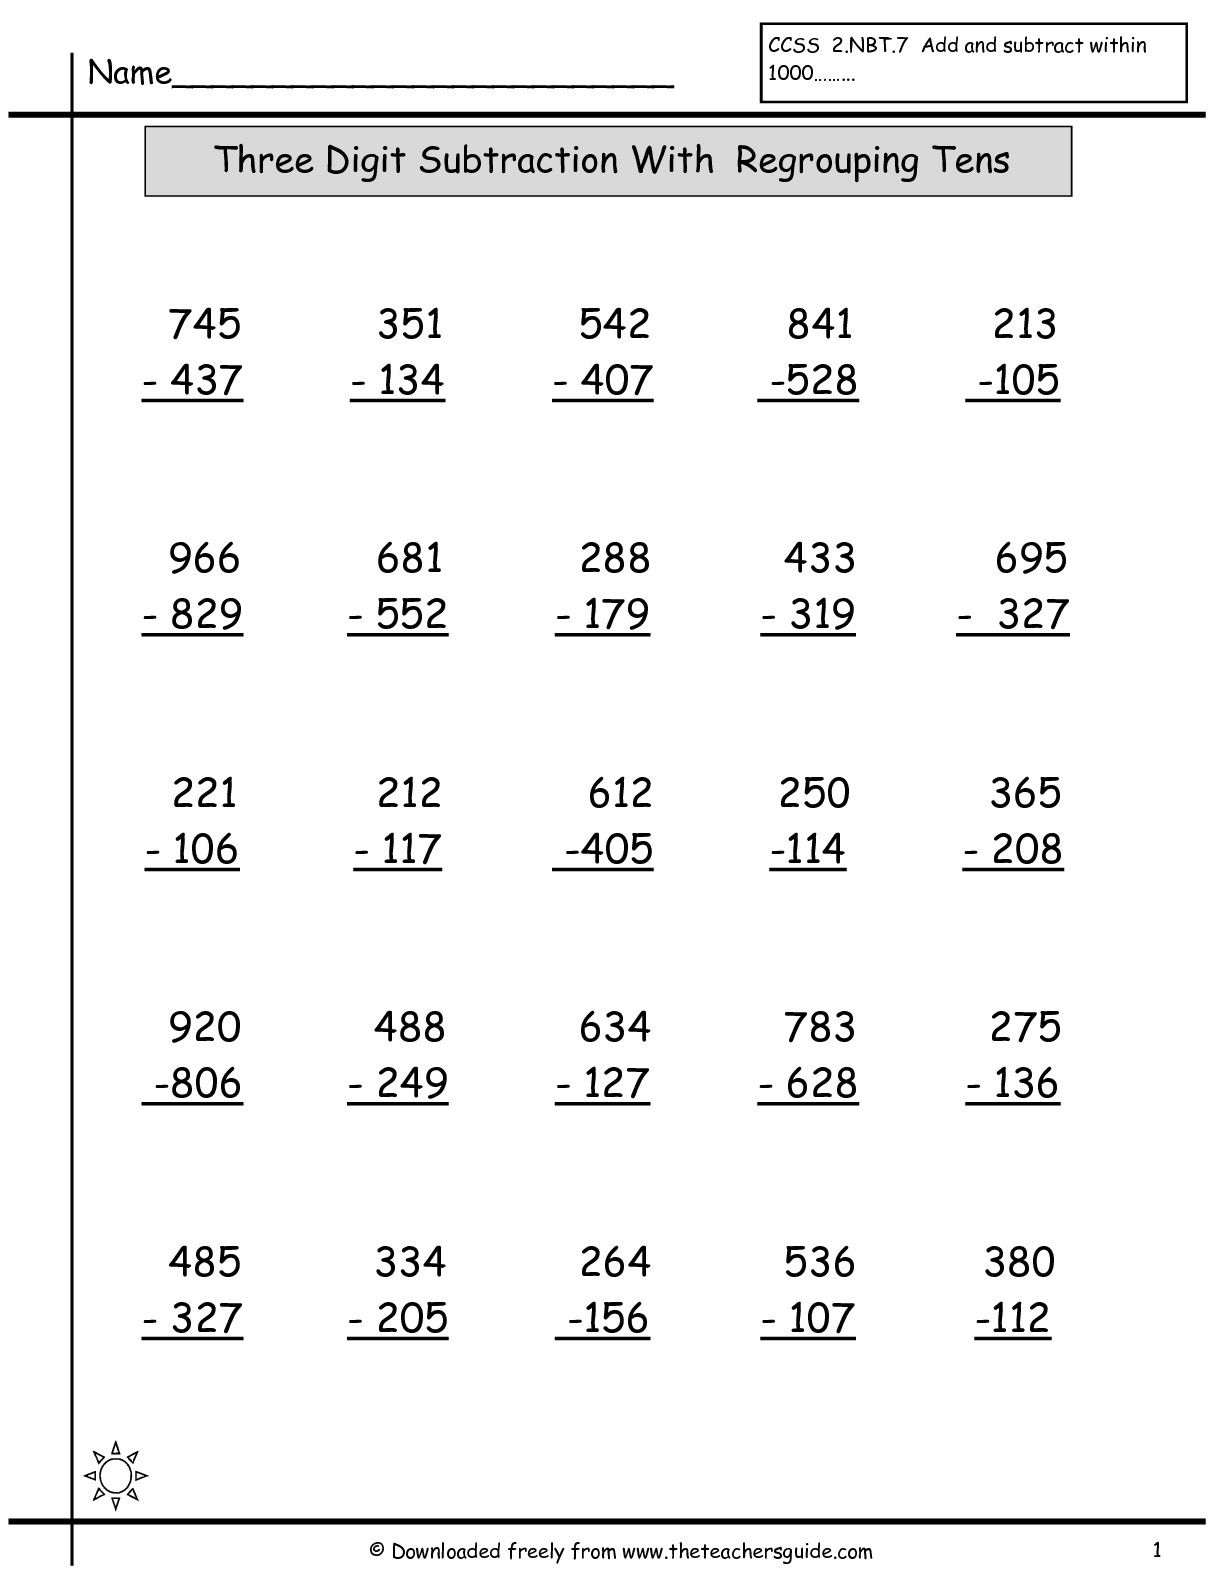 Three Digit Subtraction Worksheet